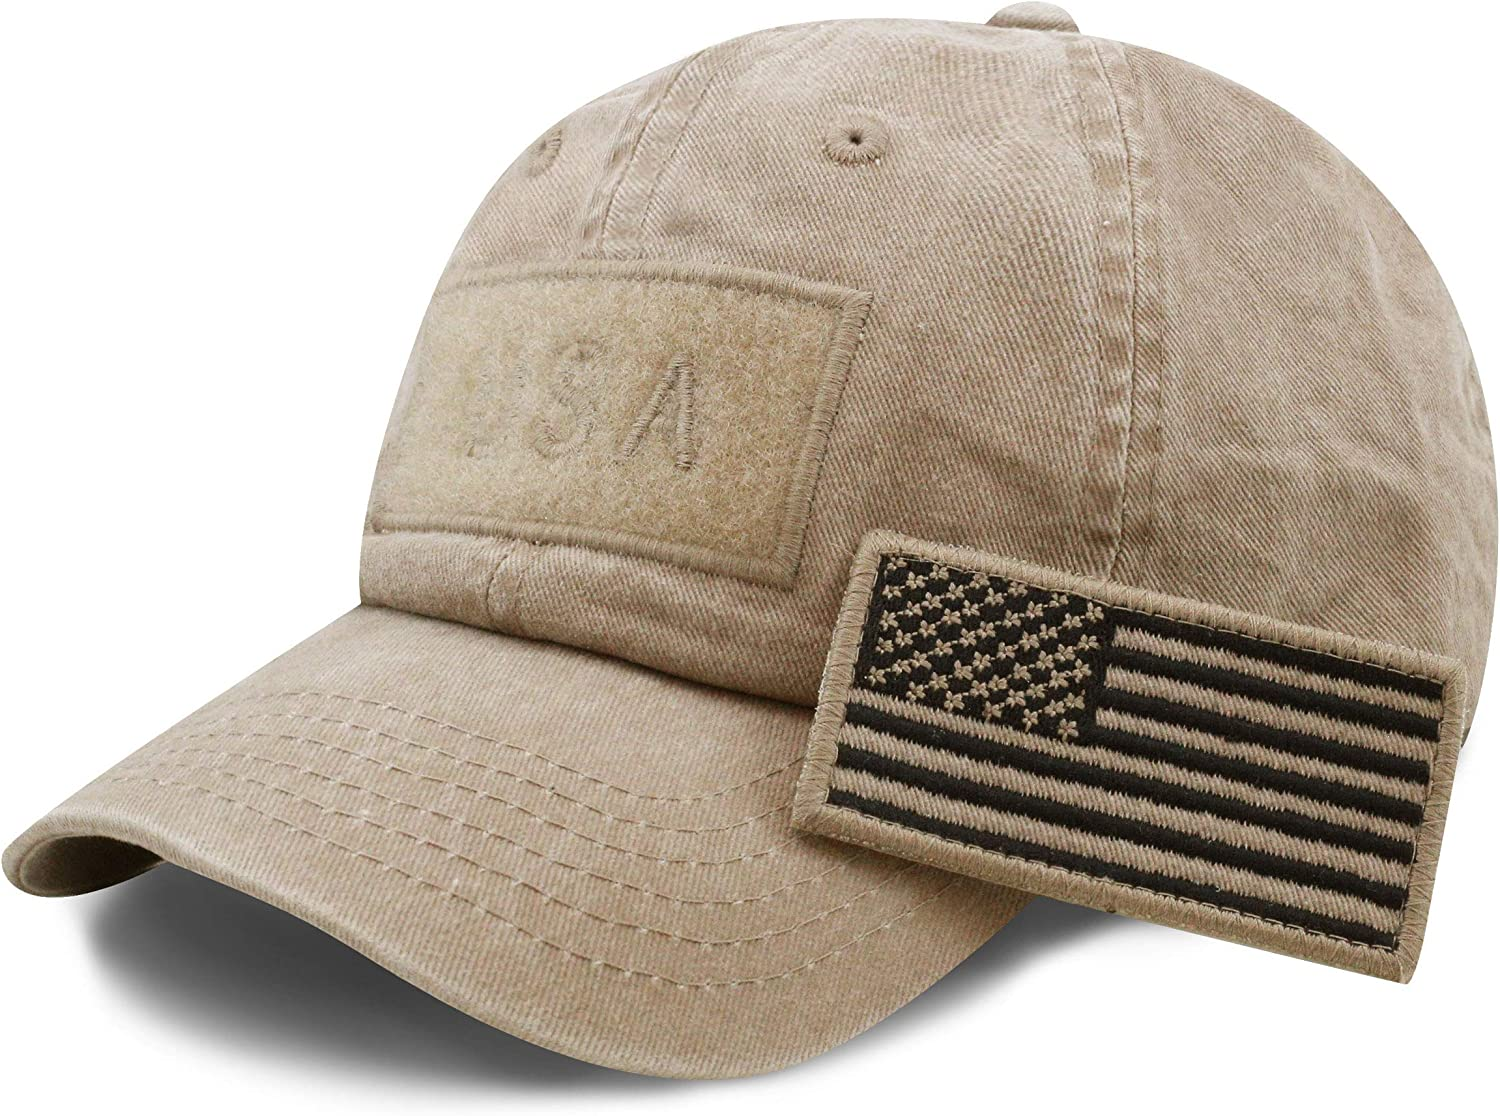 The Hat Depot Cotton Pigment USA Low Tactical Profile Los Angeles Mall Operator Tampa Mall